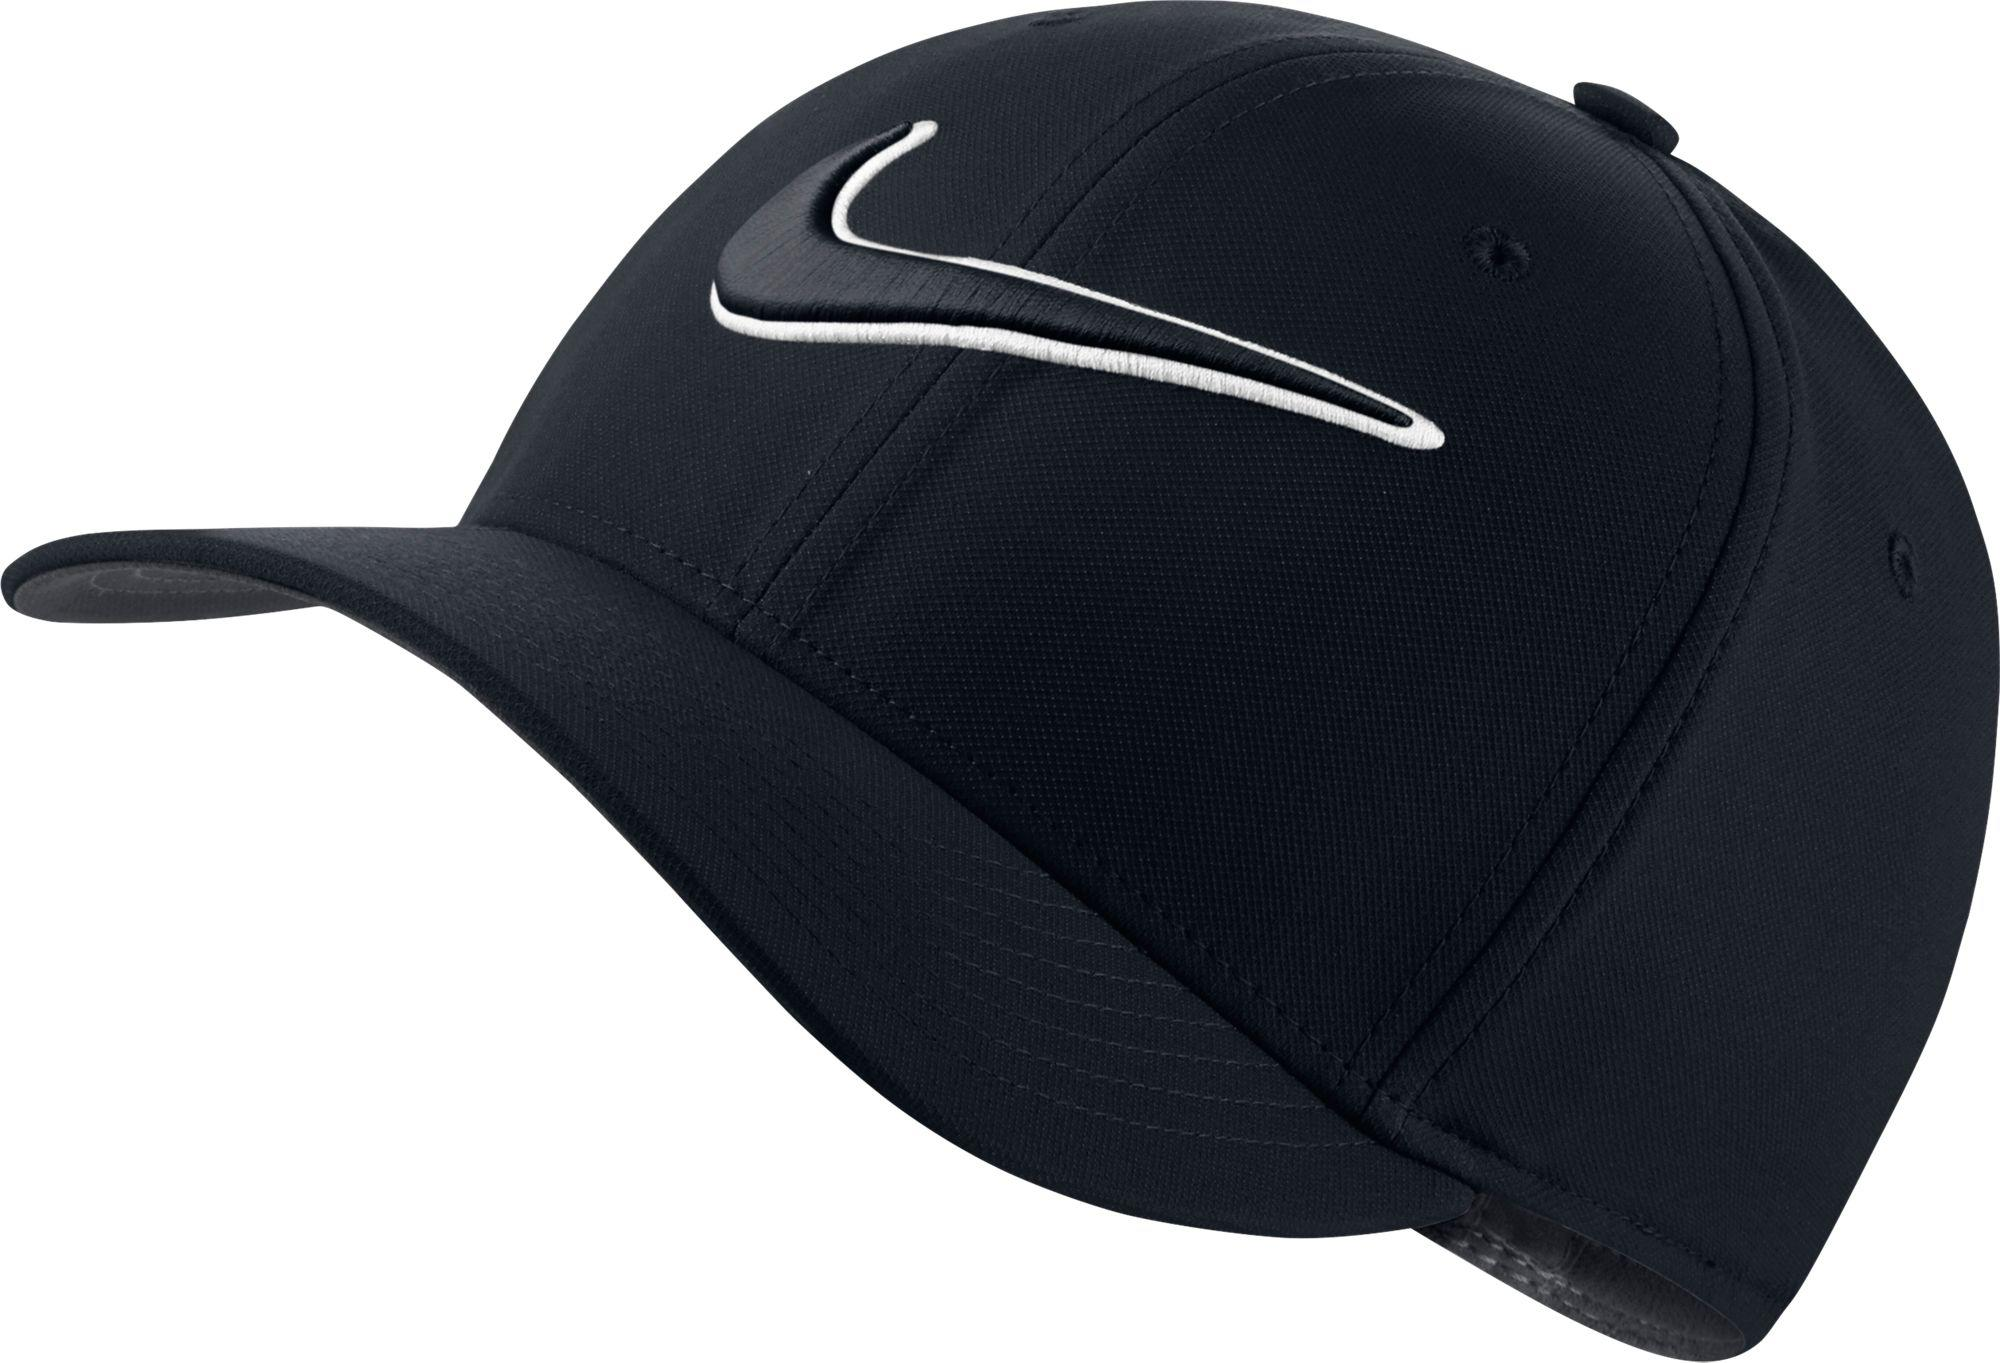 Lyst - Nike Classic99 Swoosh Golf Hat in Black for Men 3be391ad005